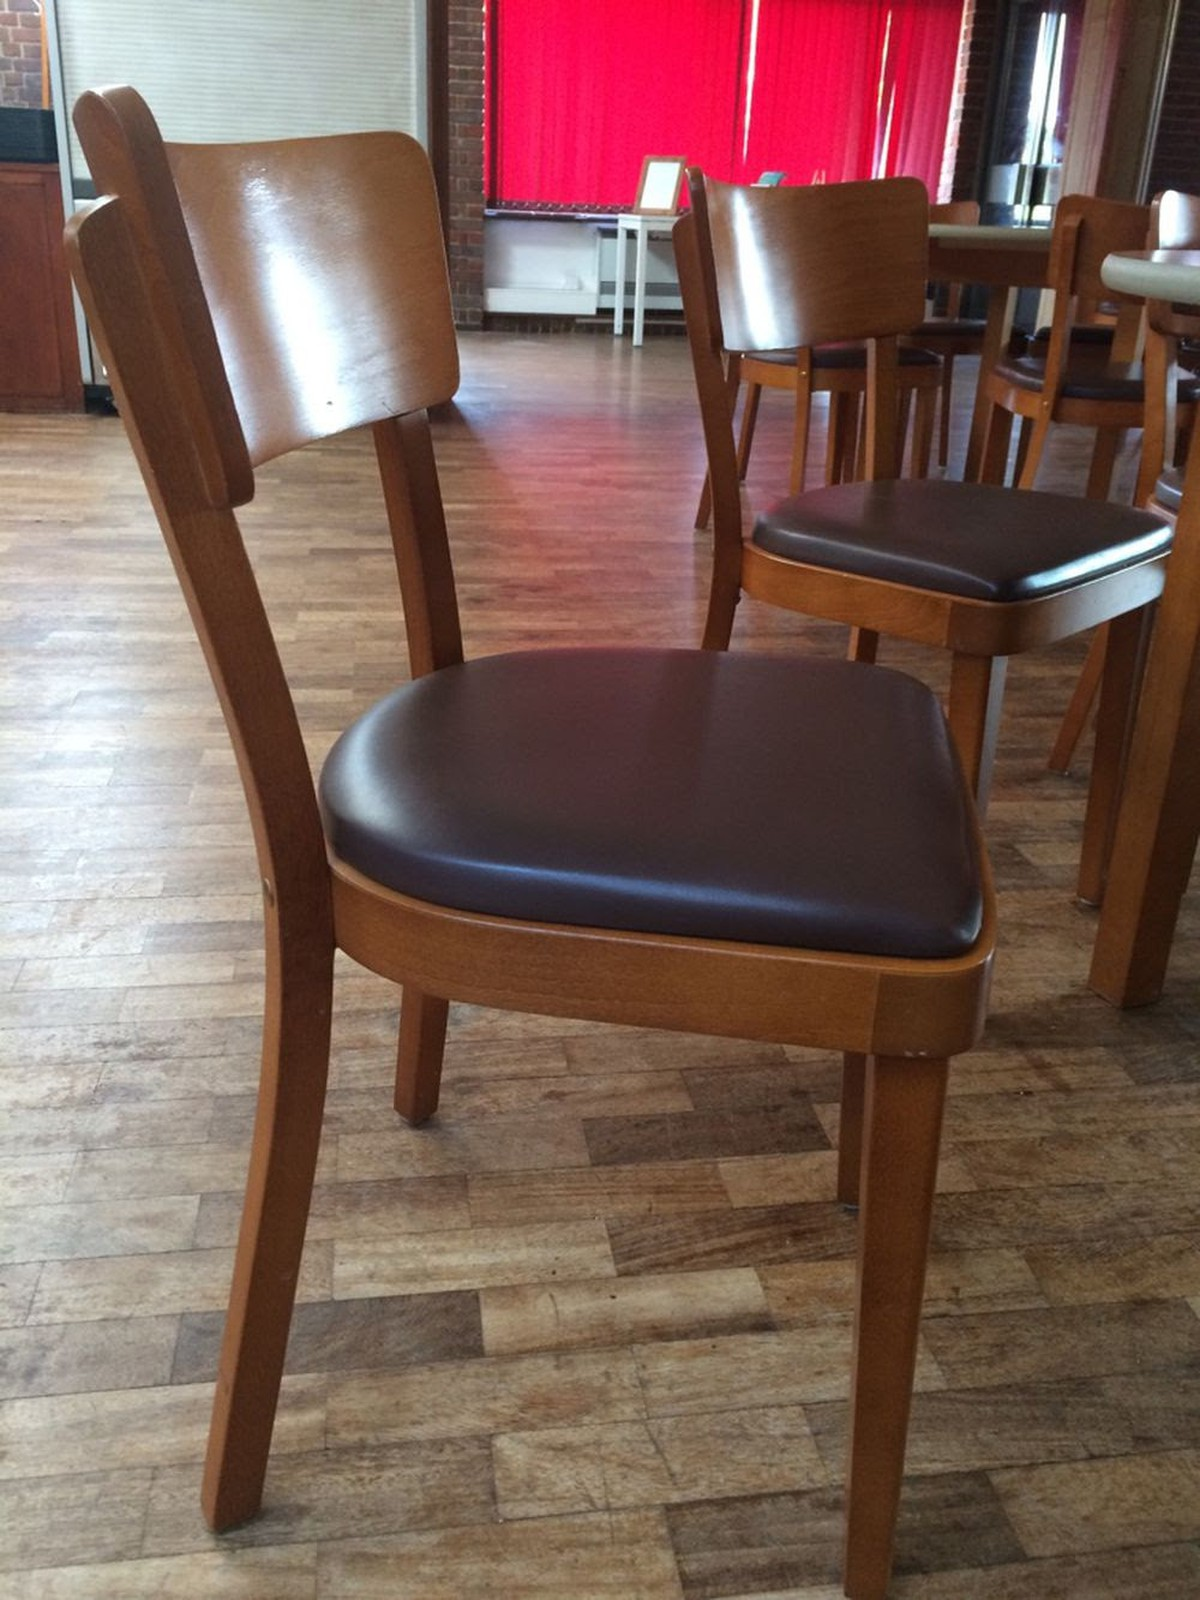 Secondhand Chairs And Tables Restaurant Chairs 100x